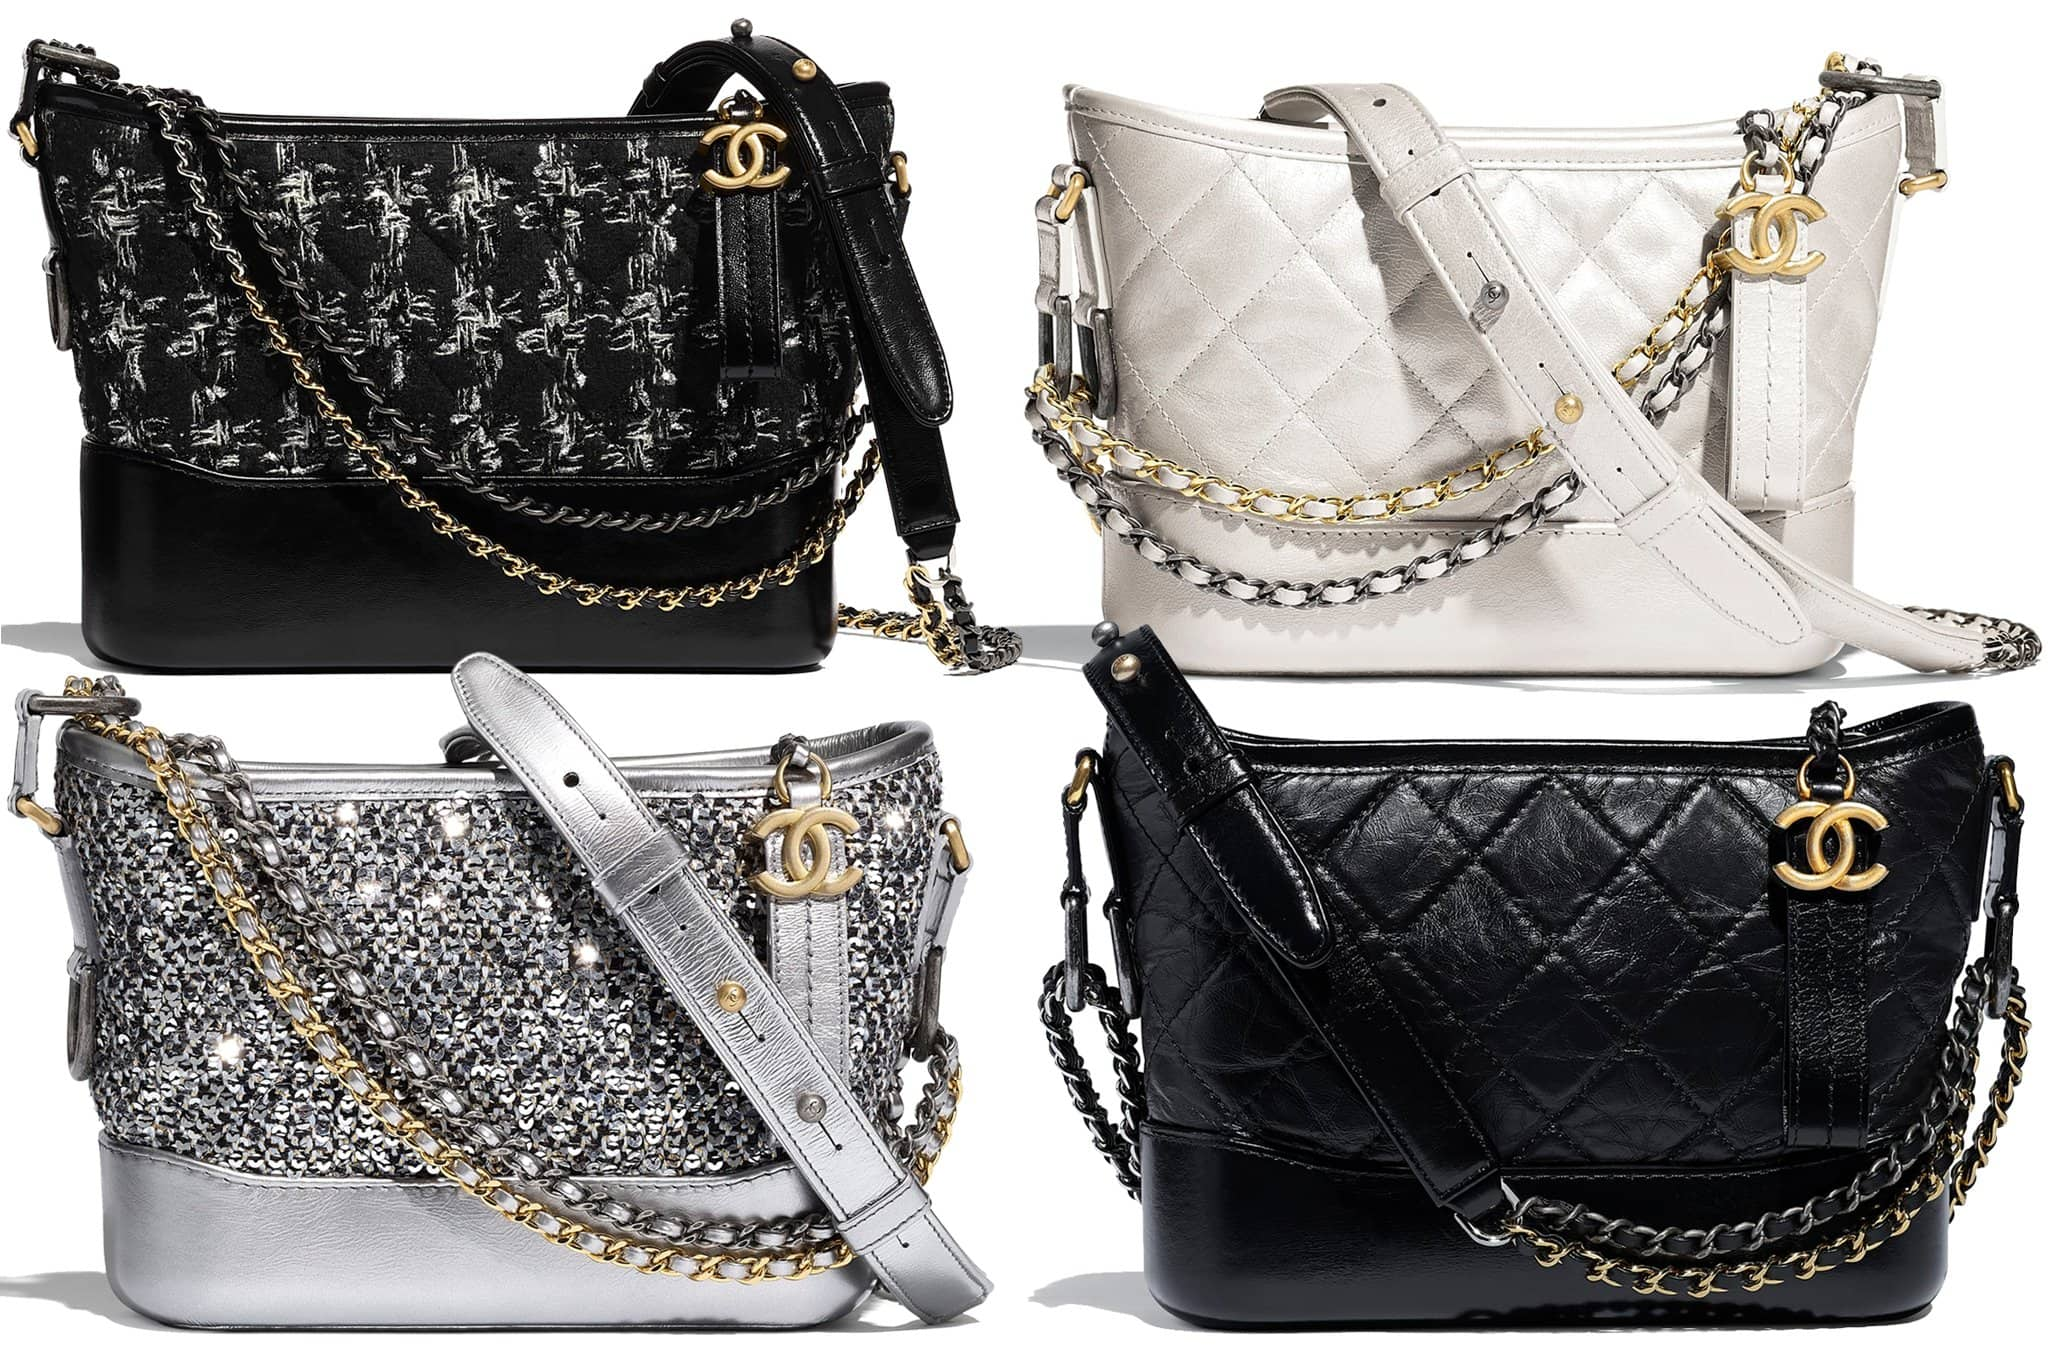 modern take on the classic hobo, you can find Chanel's Gabrielle bag in different materials, featuring the house's signature interlocking C hardware